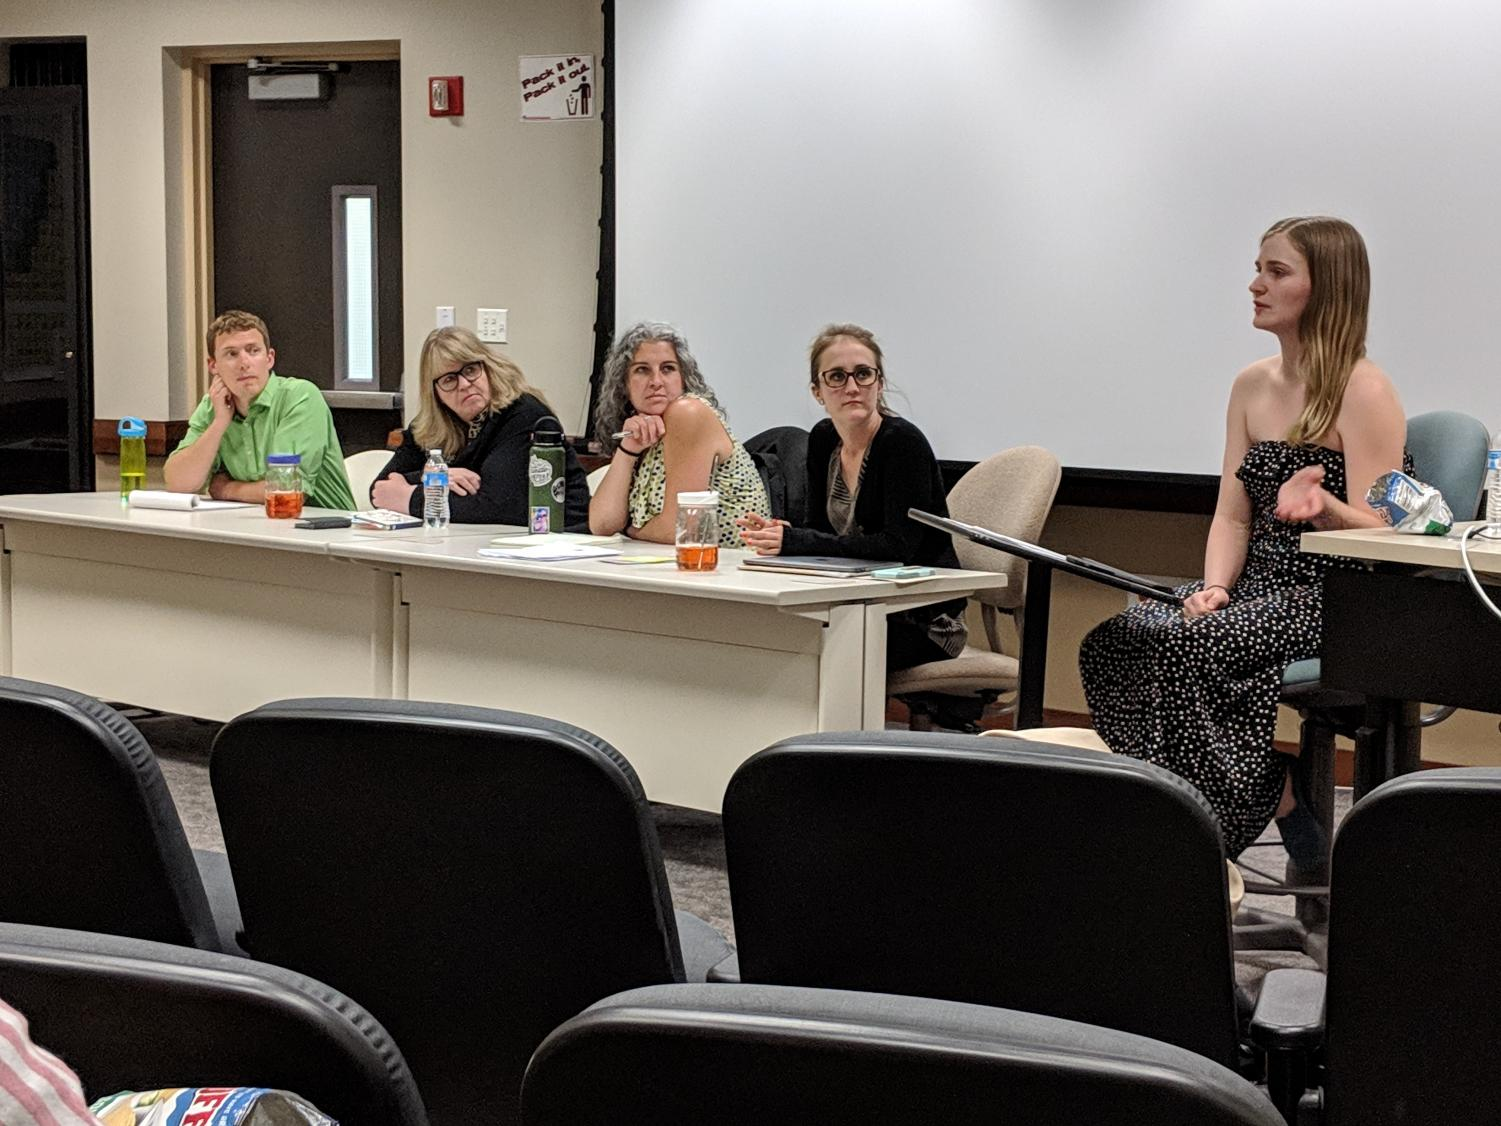 (Left to right) Joshua Nelson-Ichido, Jamie Gilbert, Dr. Meaghan Nolte and Dr. Arrington Stoll listen to Mariah Greenaway leading discussion with the student audience.